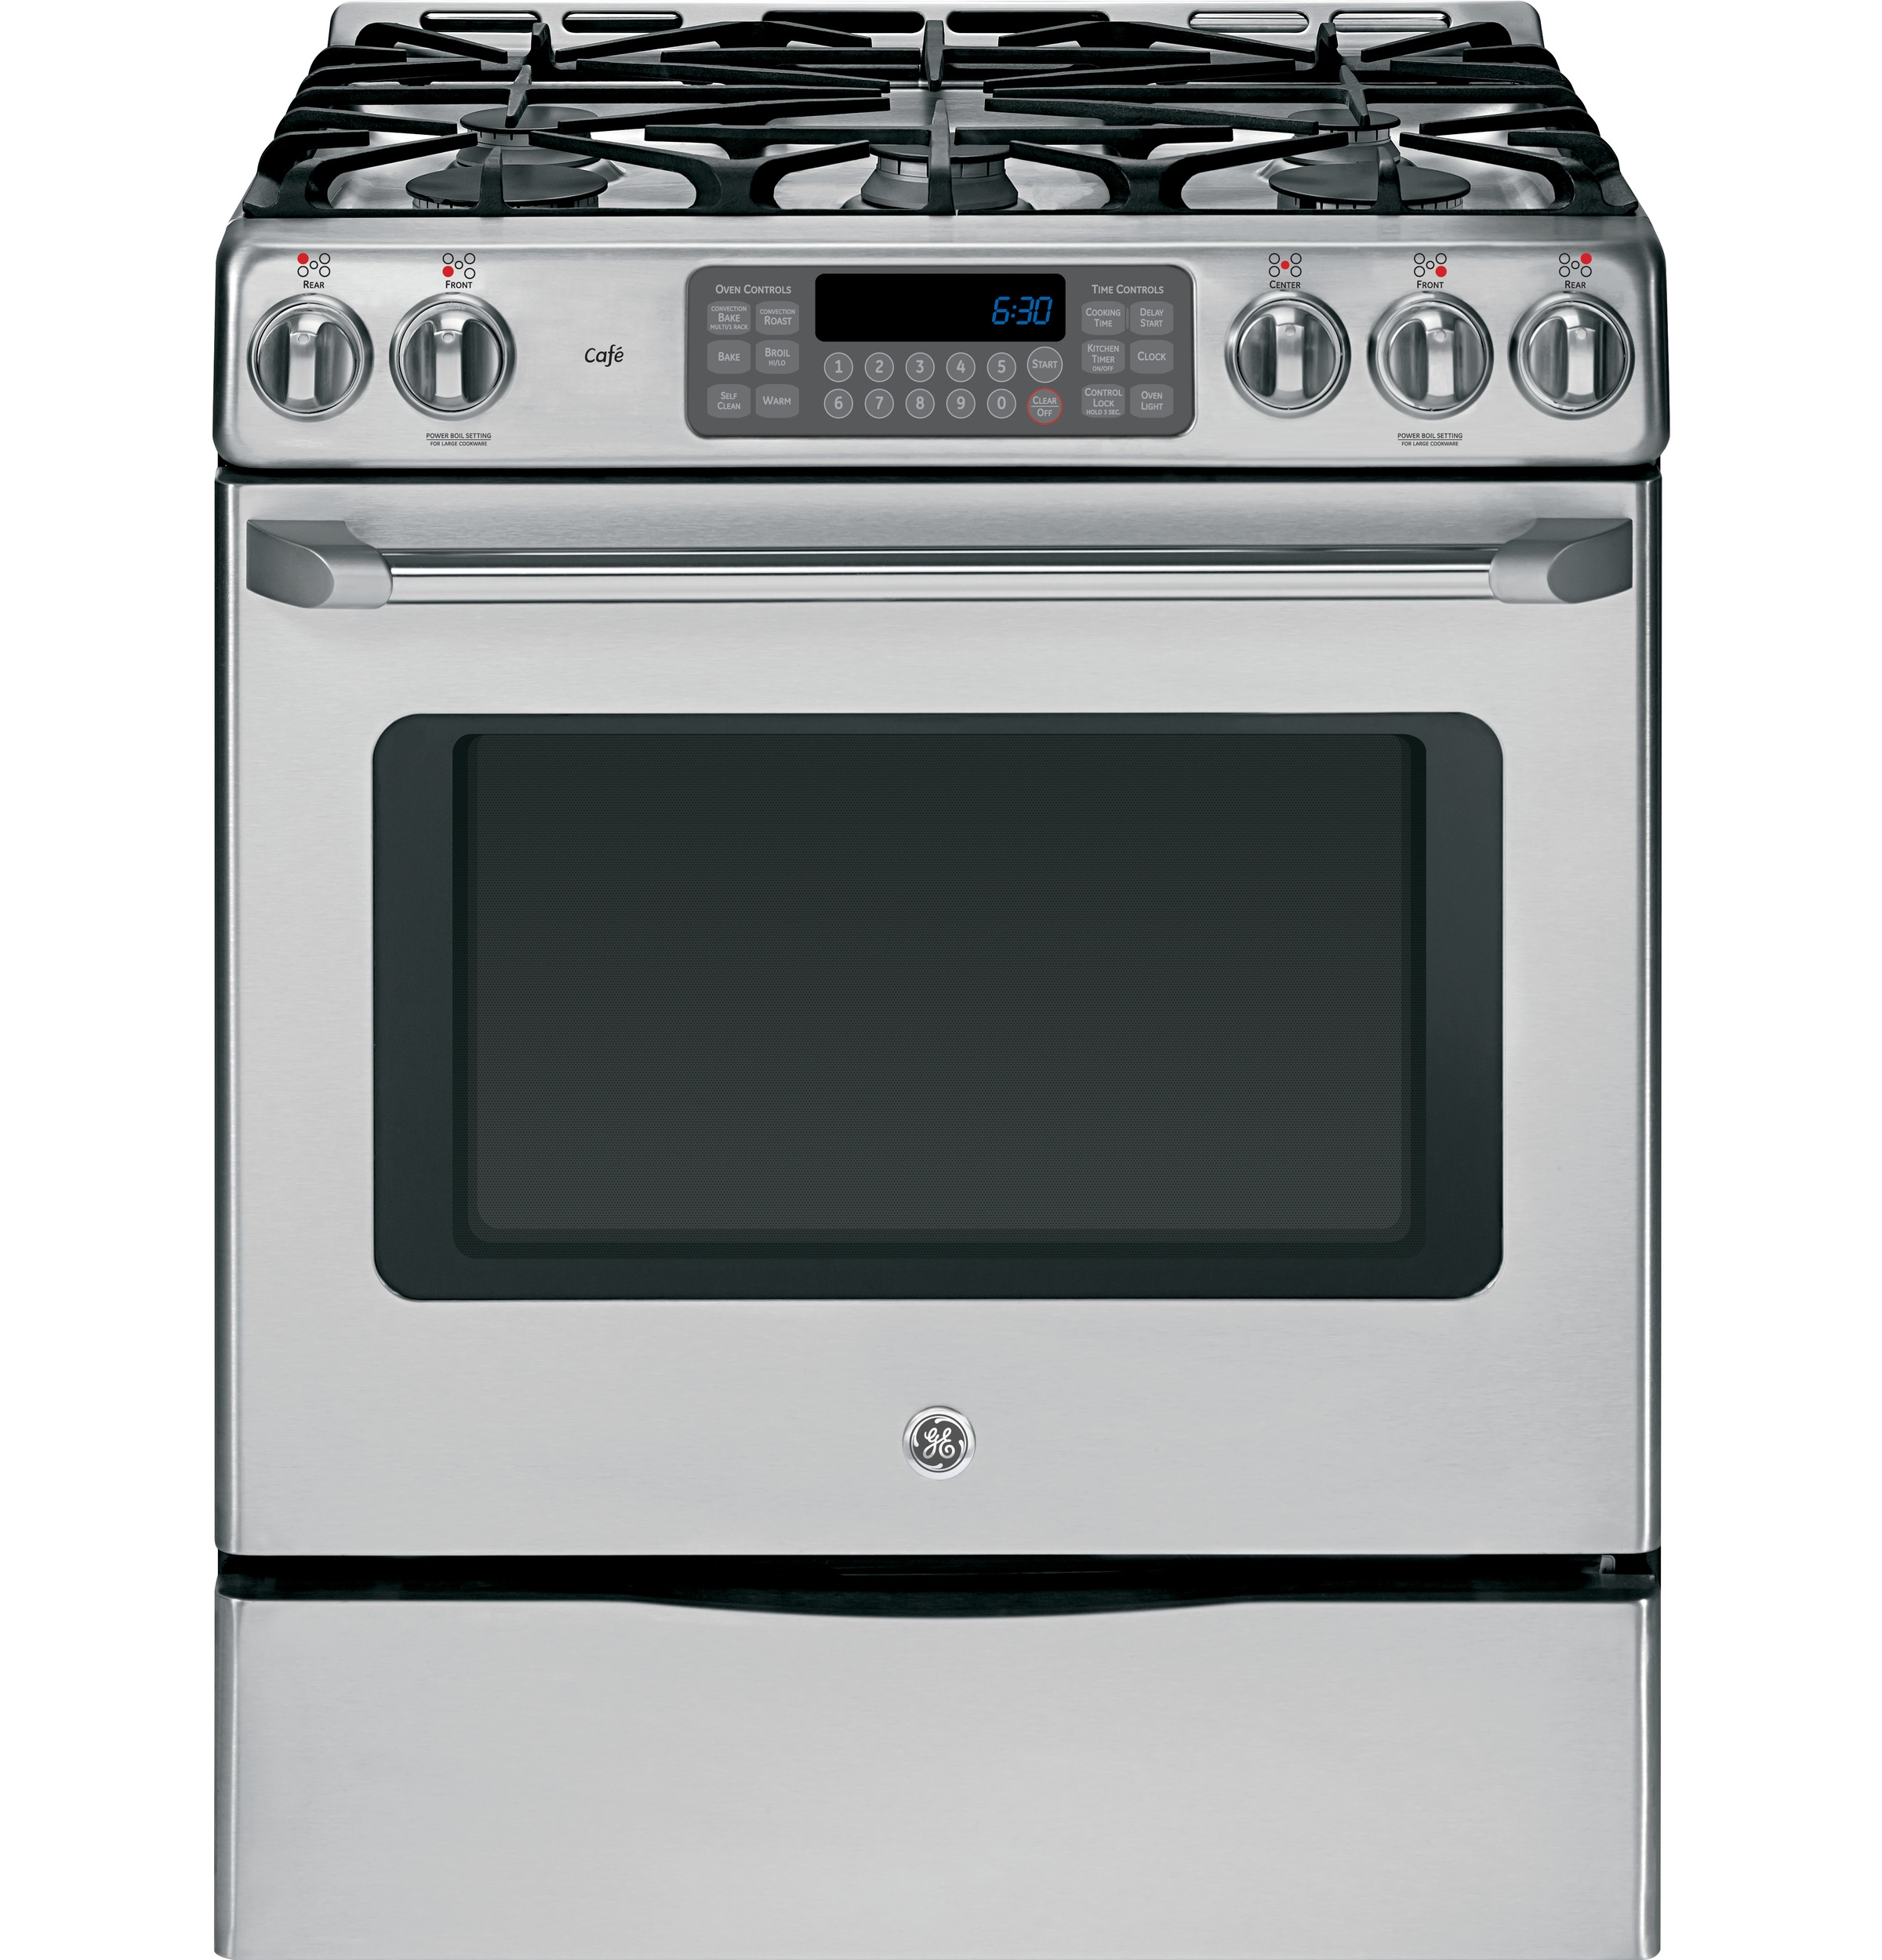 Ge Monogram Series 48 All Gas Professional Range With 4 Burners Grill And Griddle Zgp484ngrss Lewis Appliances In Trinidad The Building Source